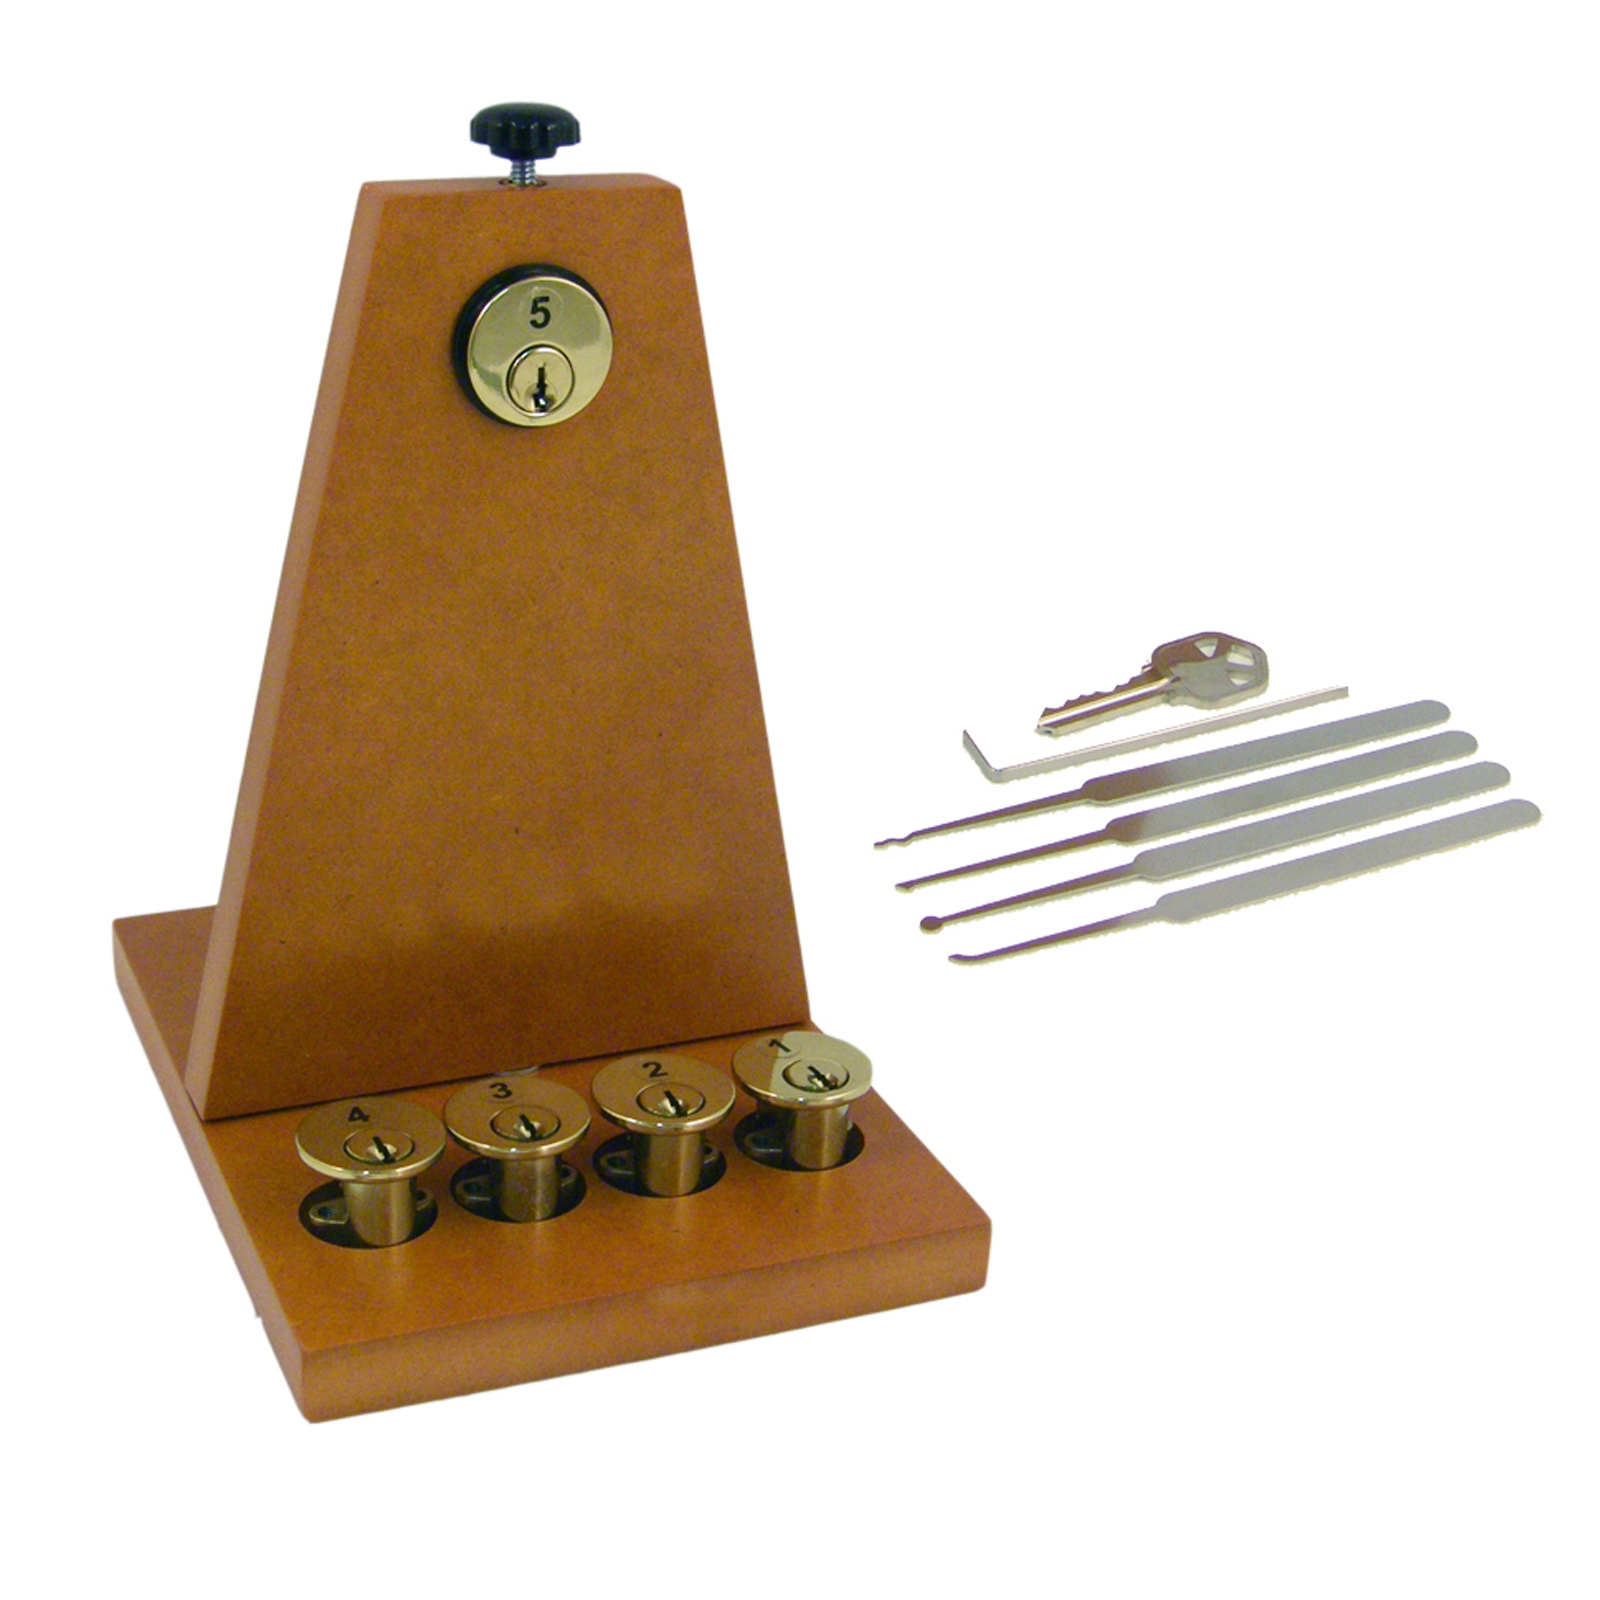 Lock Pick Tools >> Lock Picking Training Kit - Walmart.com